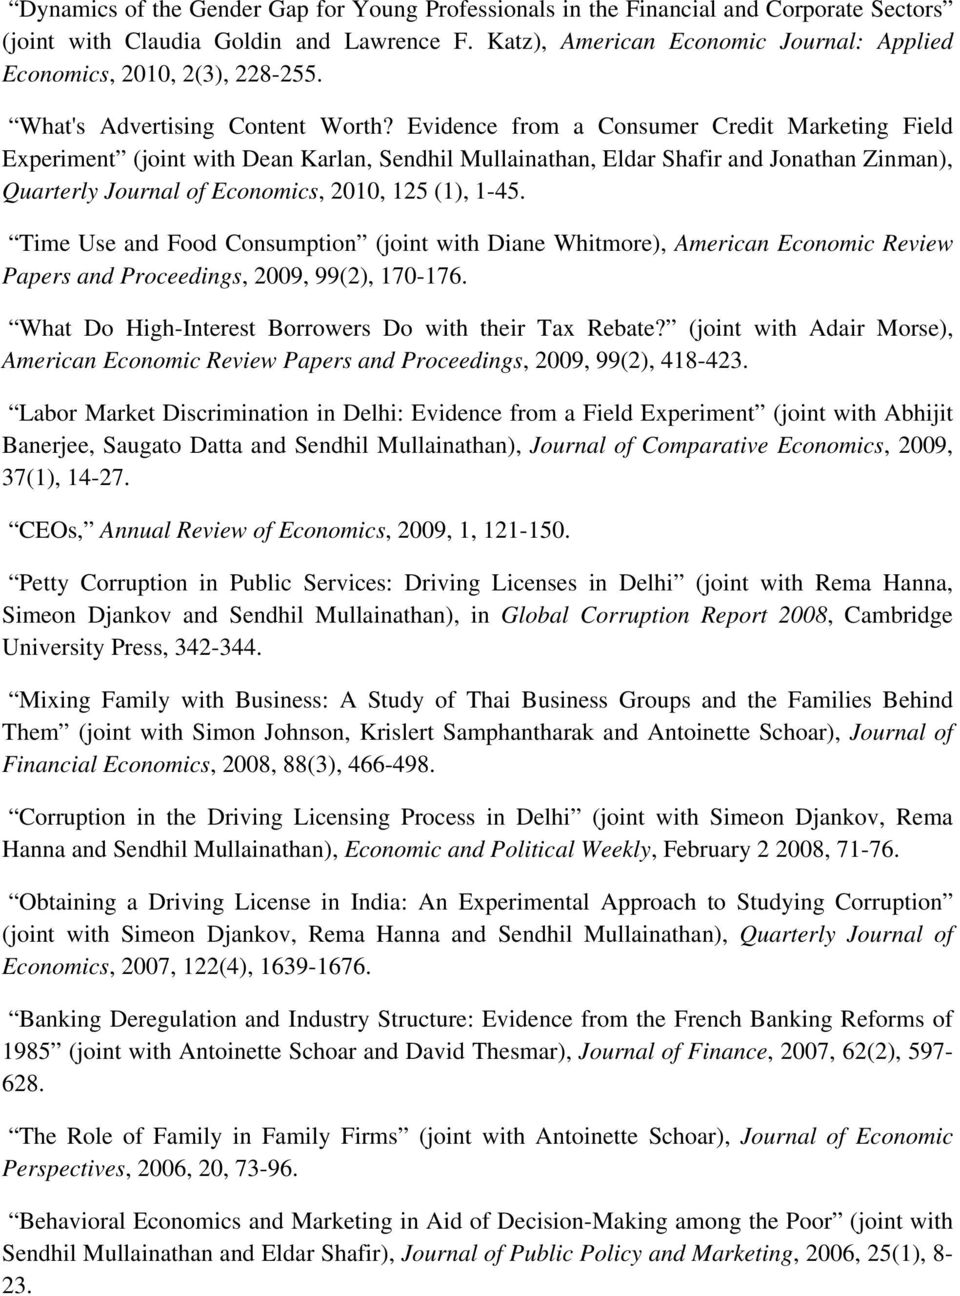 Evidence from a Consumer Credit Marketing Field Experiment (joint with Dean Karlan, Sendhil Mullainathan, Eldar Shafir and Jonathan Zinman), Quarterly Journal of Economics, 2010, 125 (1), 1-45.